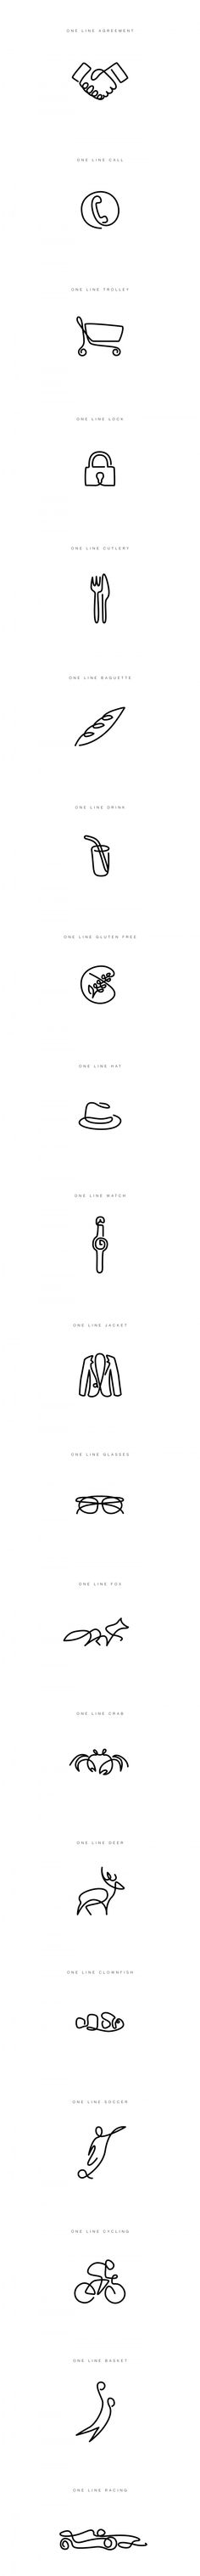 One line icons